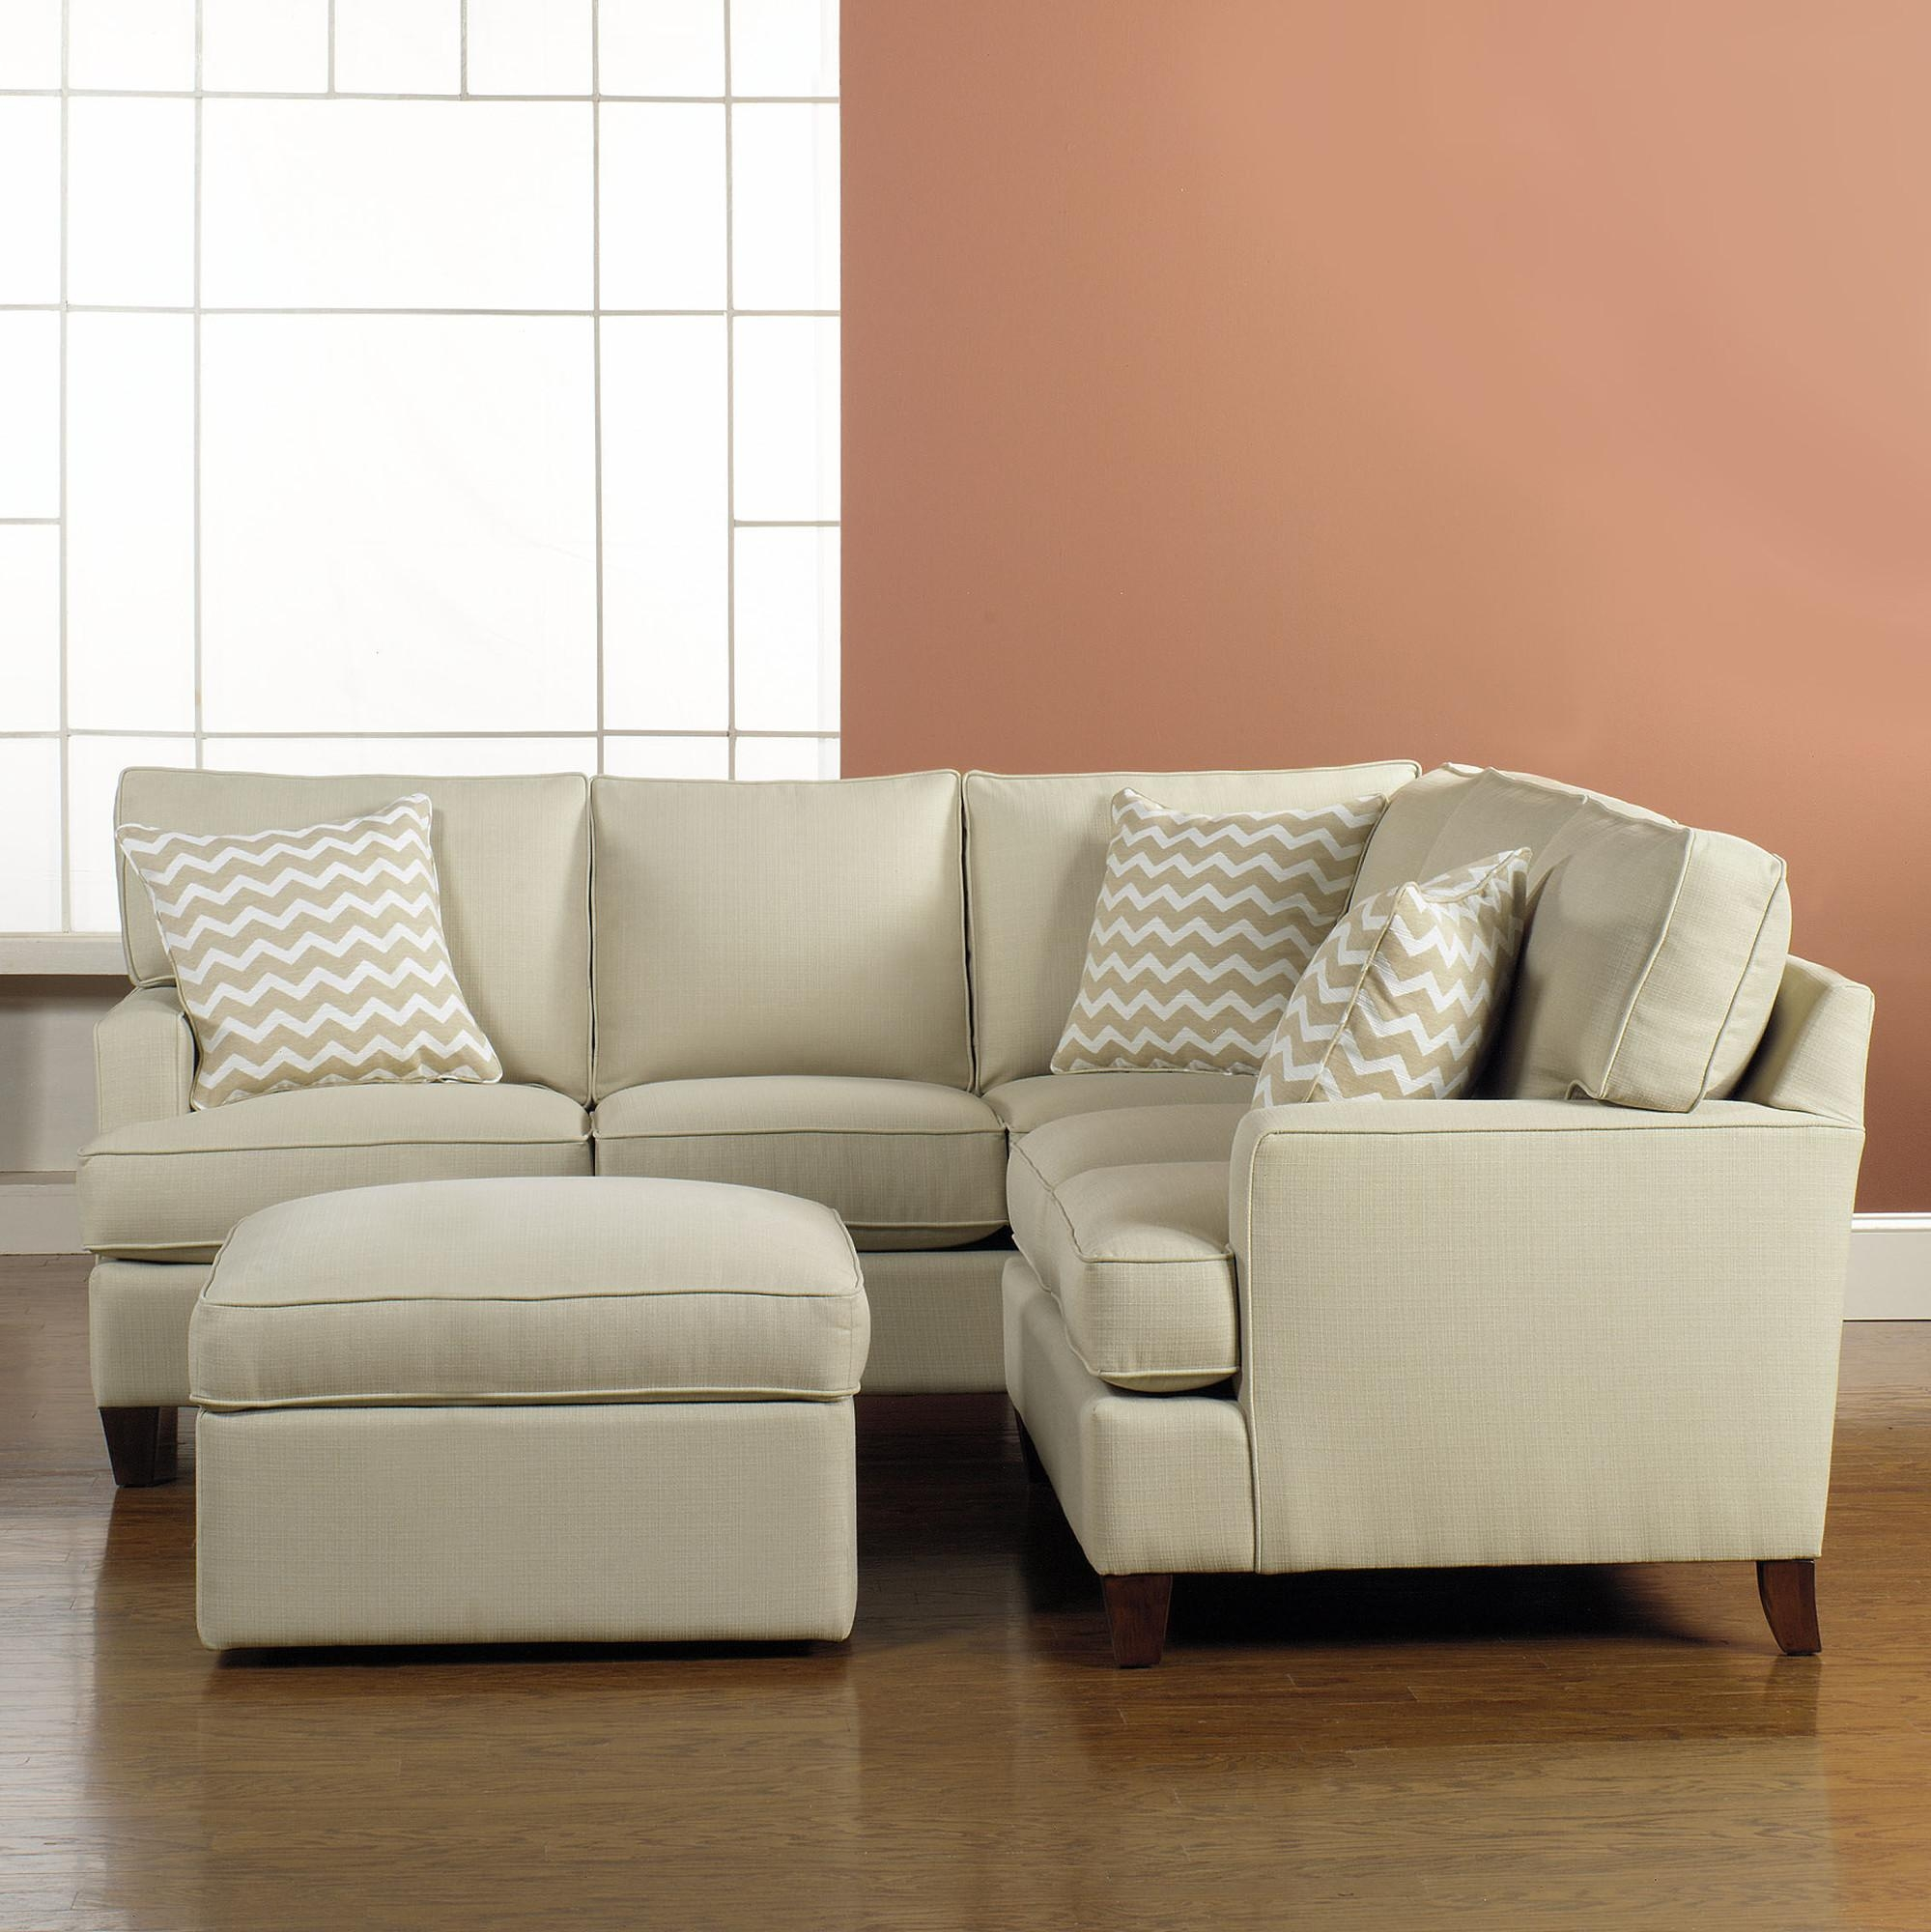 Loveseats For Small Spaces 20 Inspirations Modern Sectional Sofas For Small Spaces